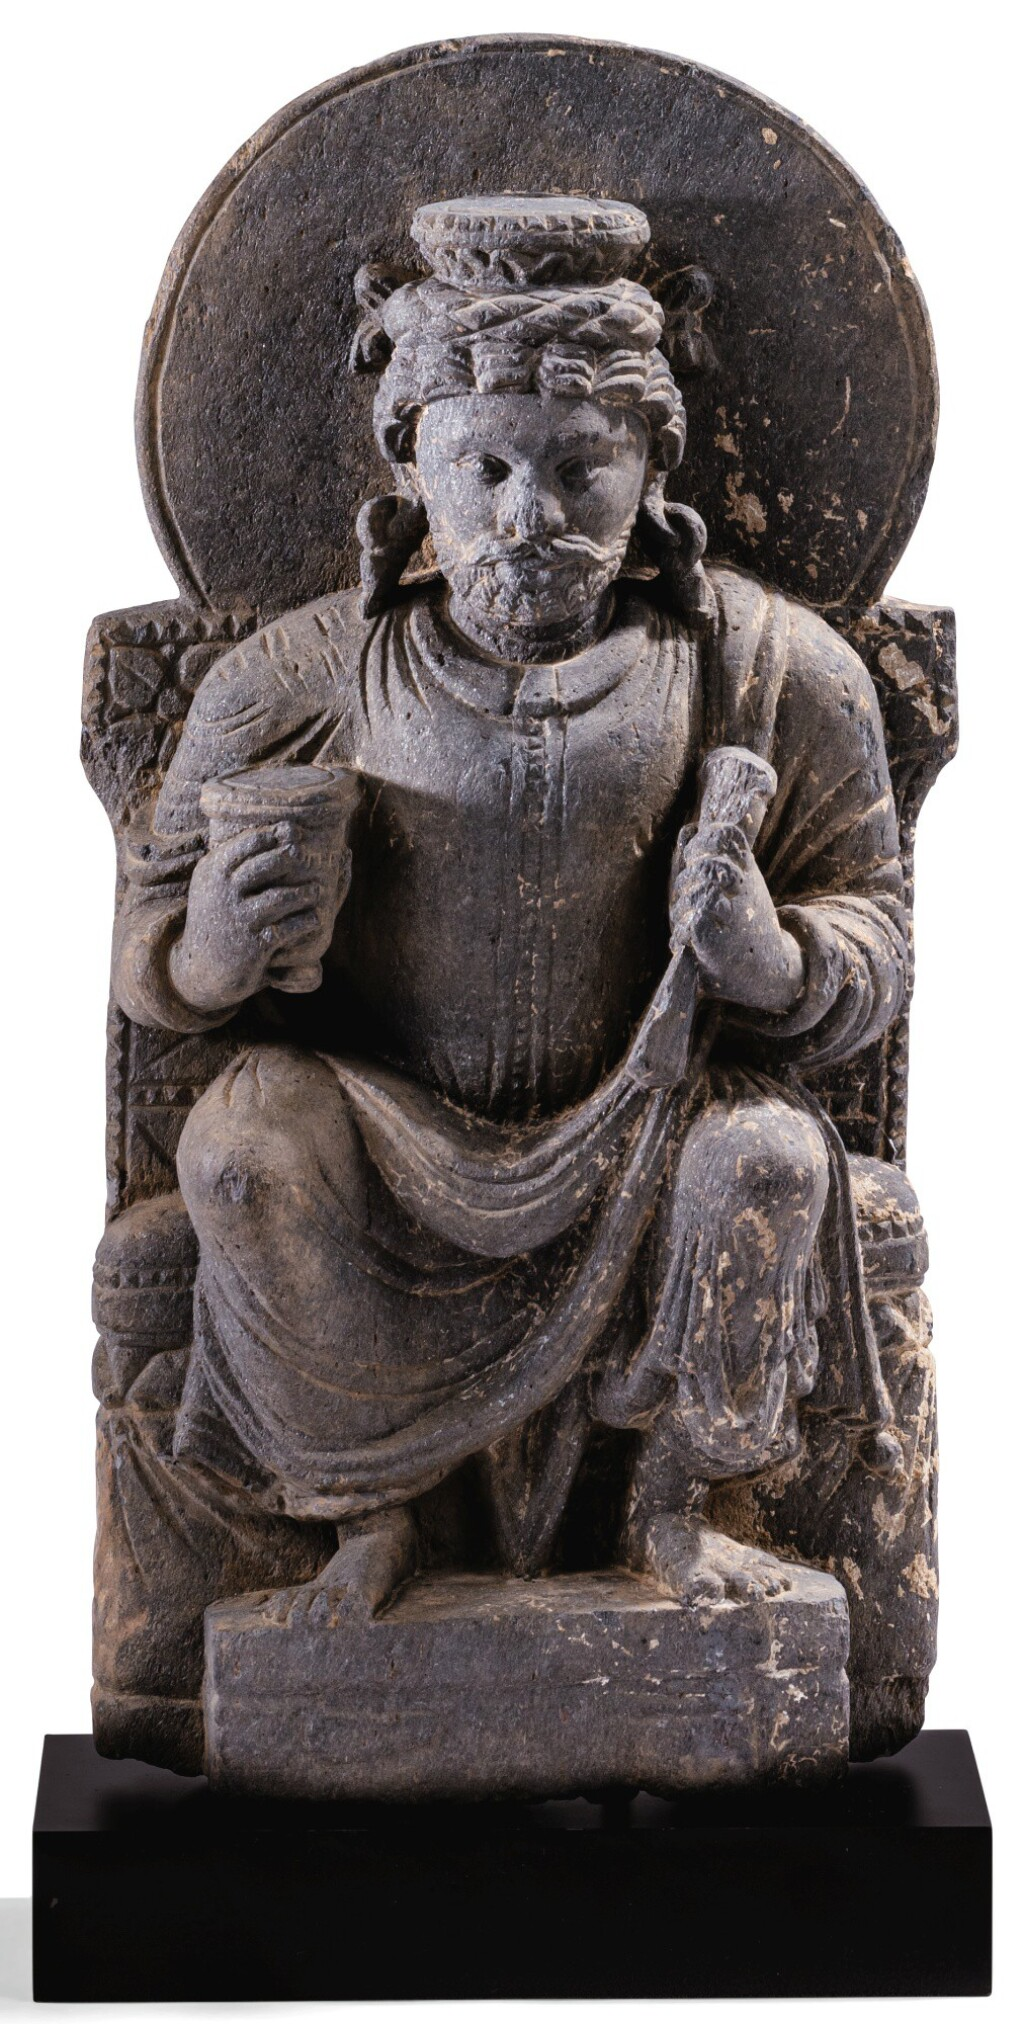 STATUETTE D'INDRA EN SCHISTE GRIS GANDHÂRA, IIE-IVE SIÈCLE | 犍陀羅 二至四世紀 灰片岩雕因陀羅坐像 | A grey schist figure of seated Indra, Gandhara, 2nd/4th century